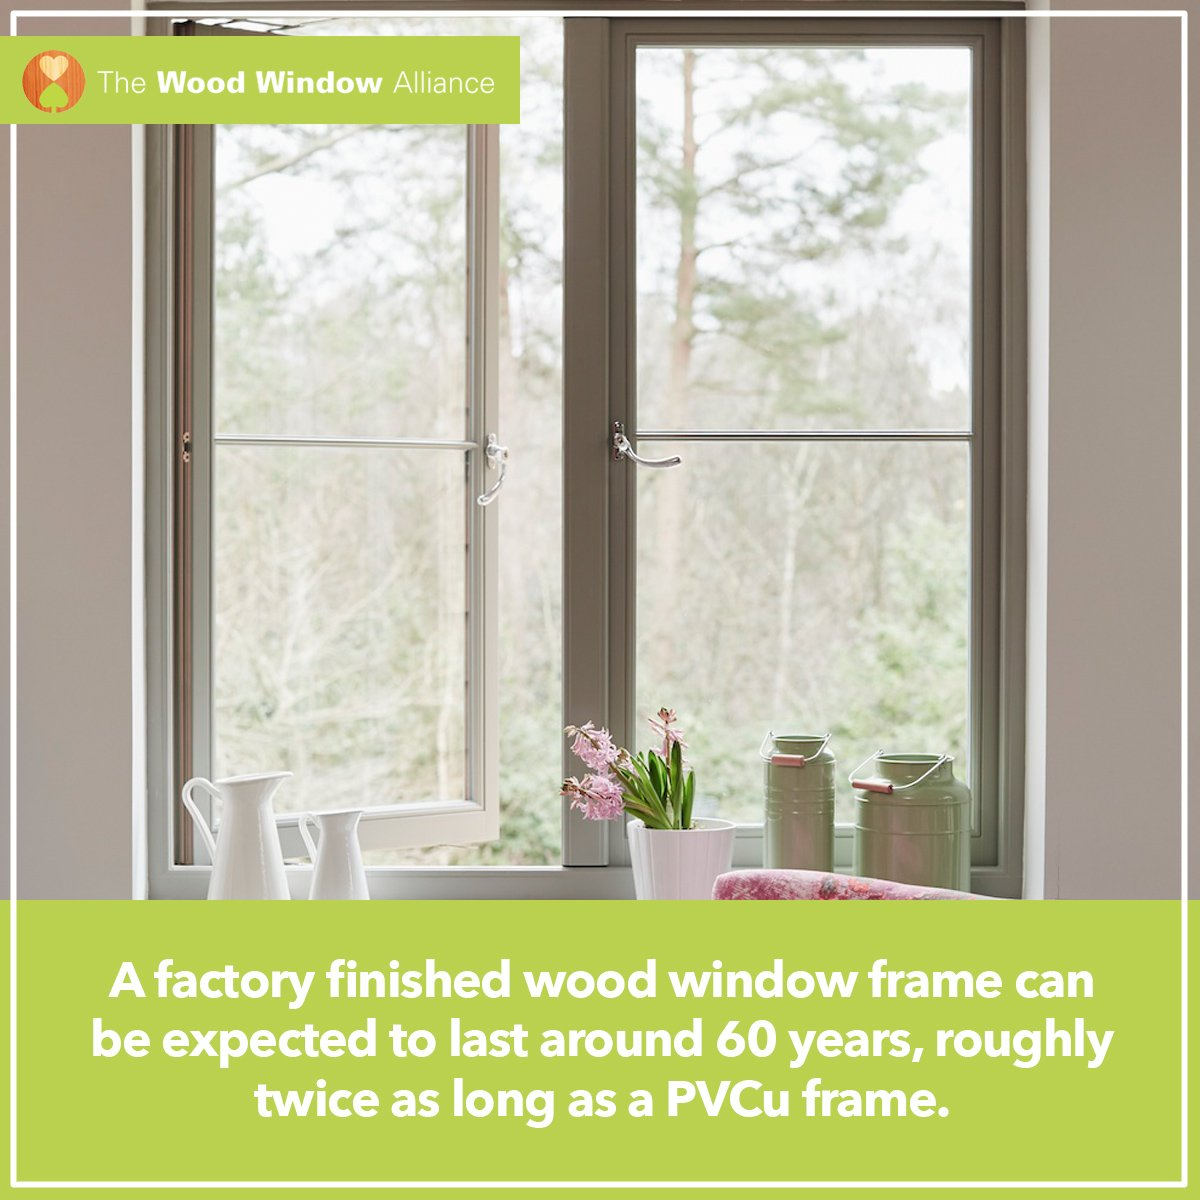 Find Out More About How Wood Windows Can Improve Your Homes Lifespan And Save You Money Here Https Bit Ly 2sxntni Fridaymotivationpic Twitter